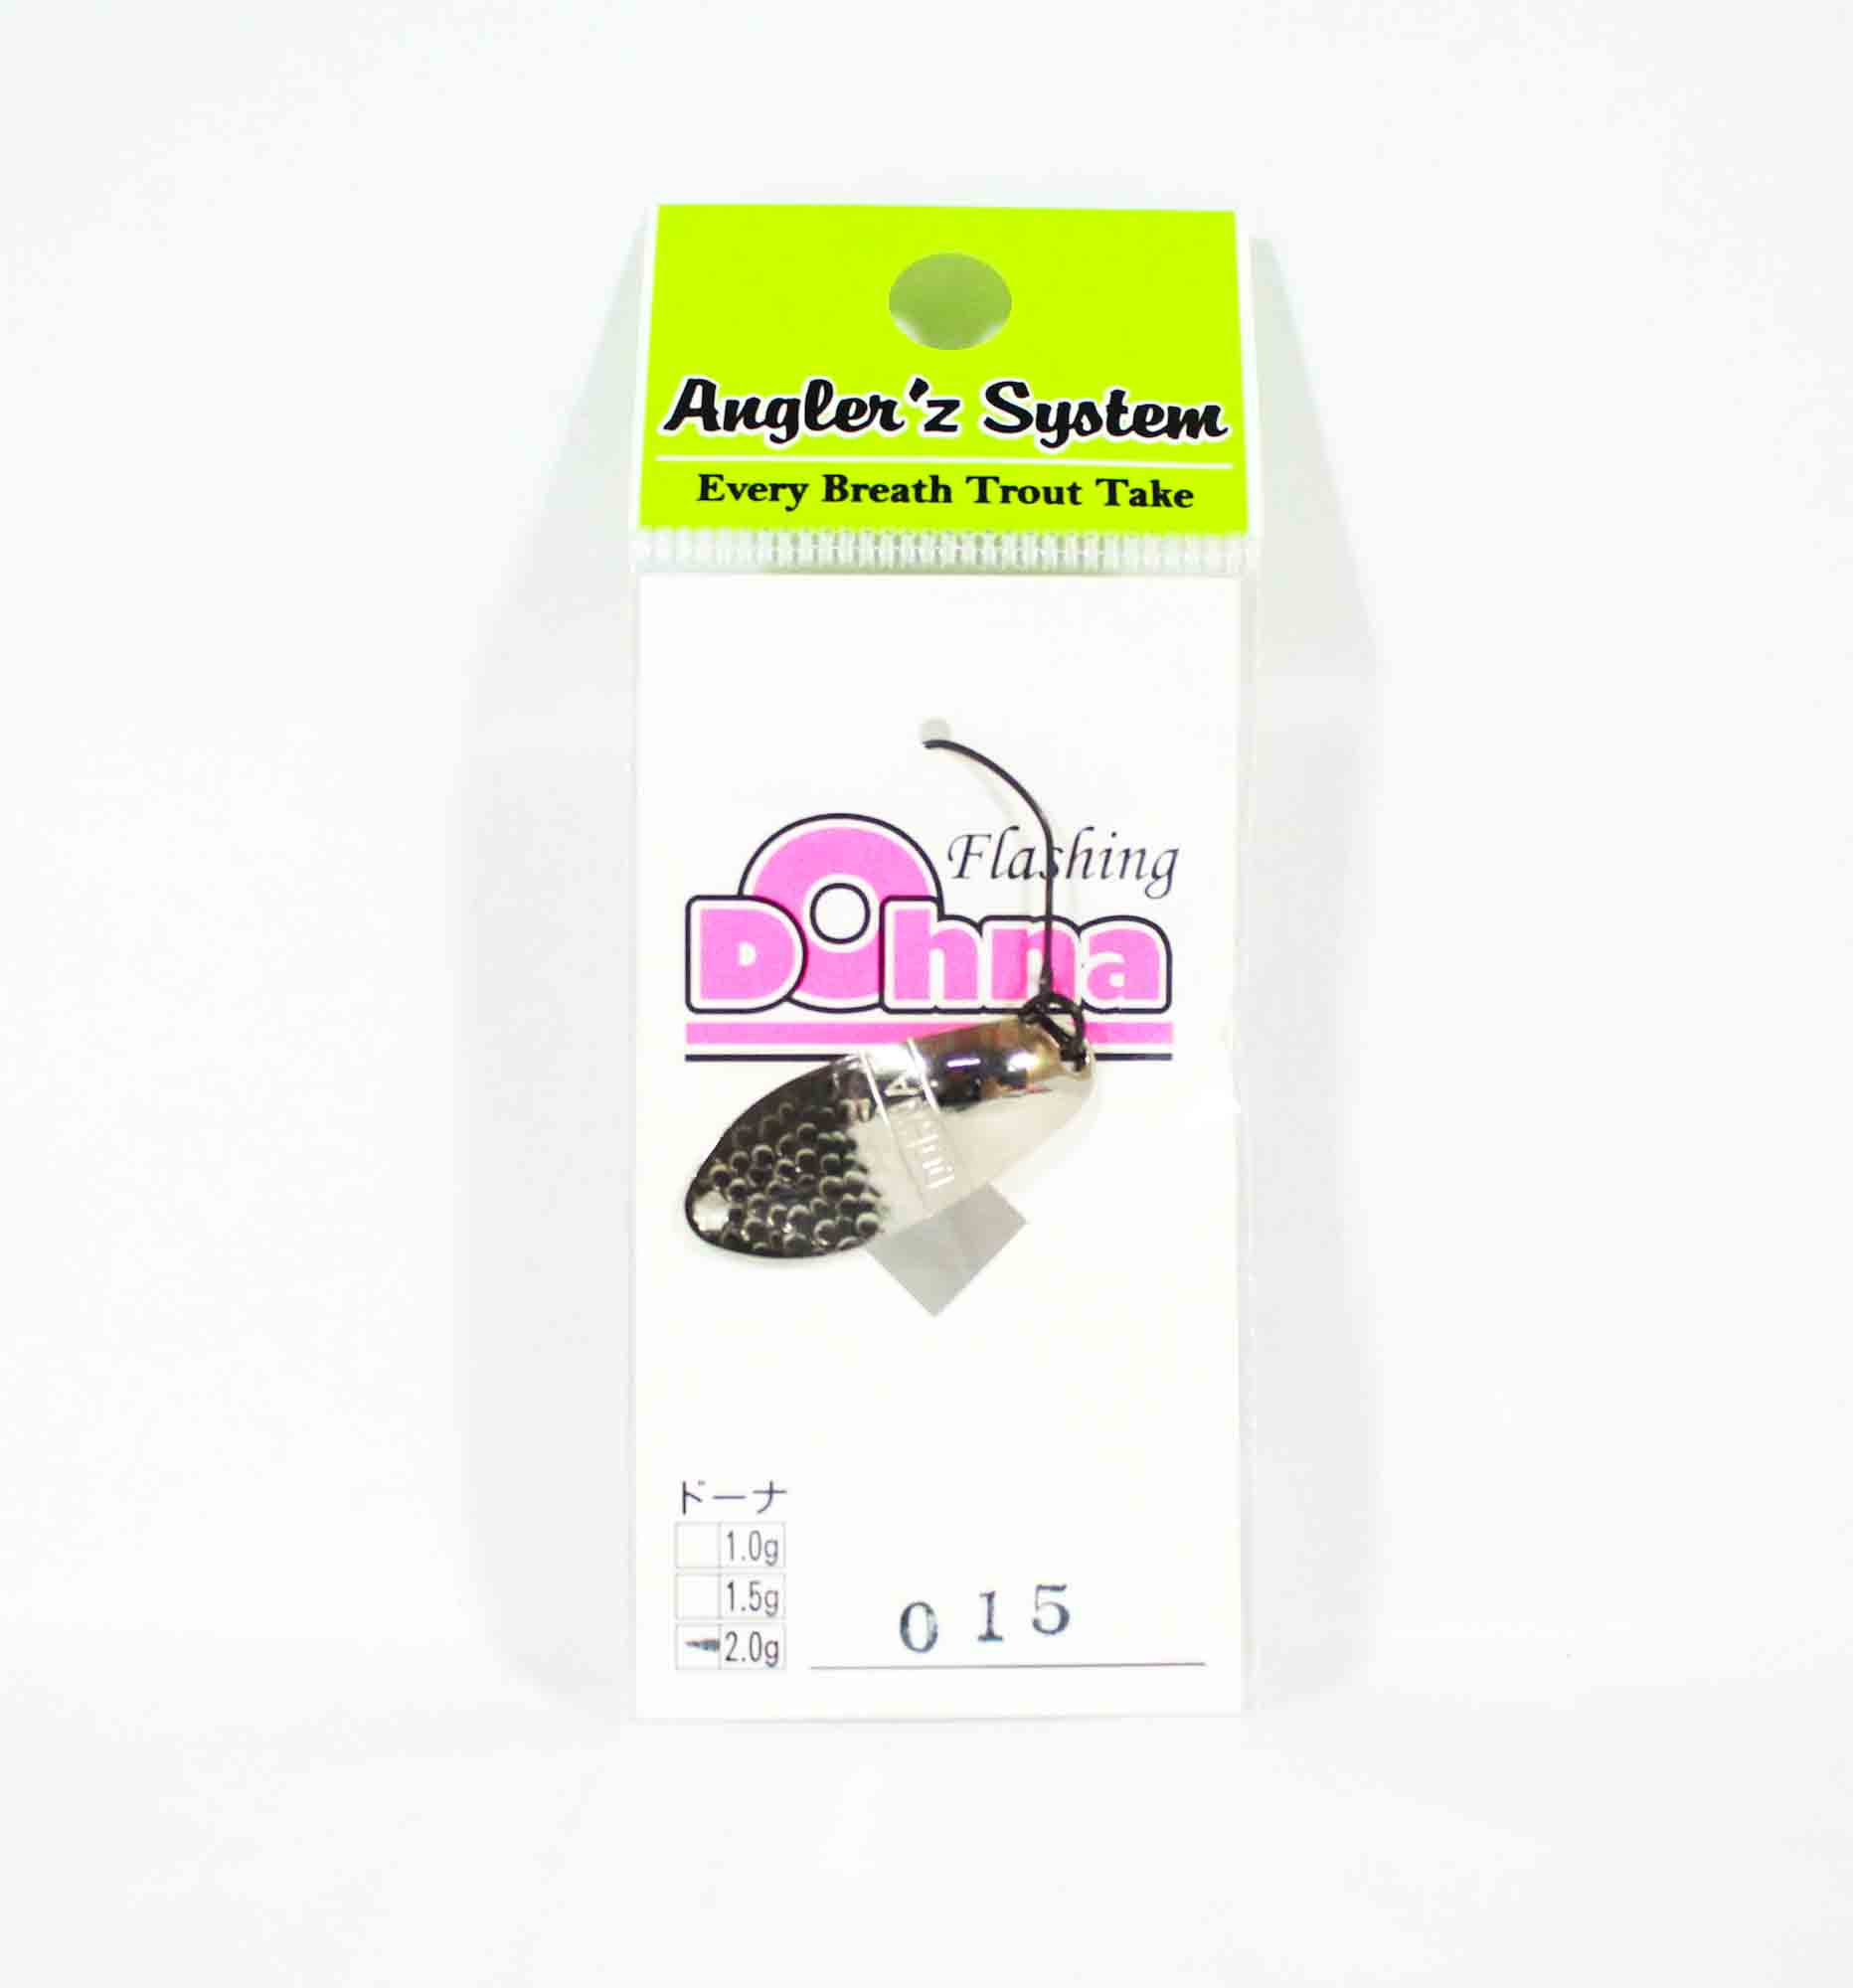 Anglers System Antem Dohna 2.0 grams Spoon Sinking Lure 015 (4596)